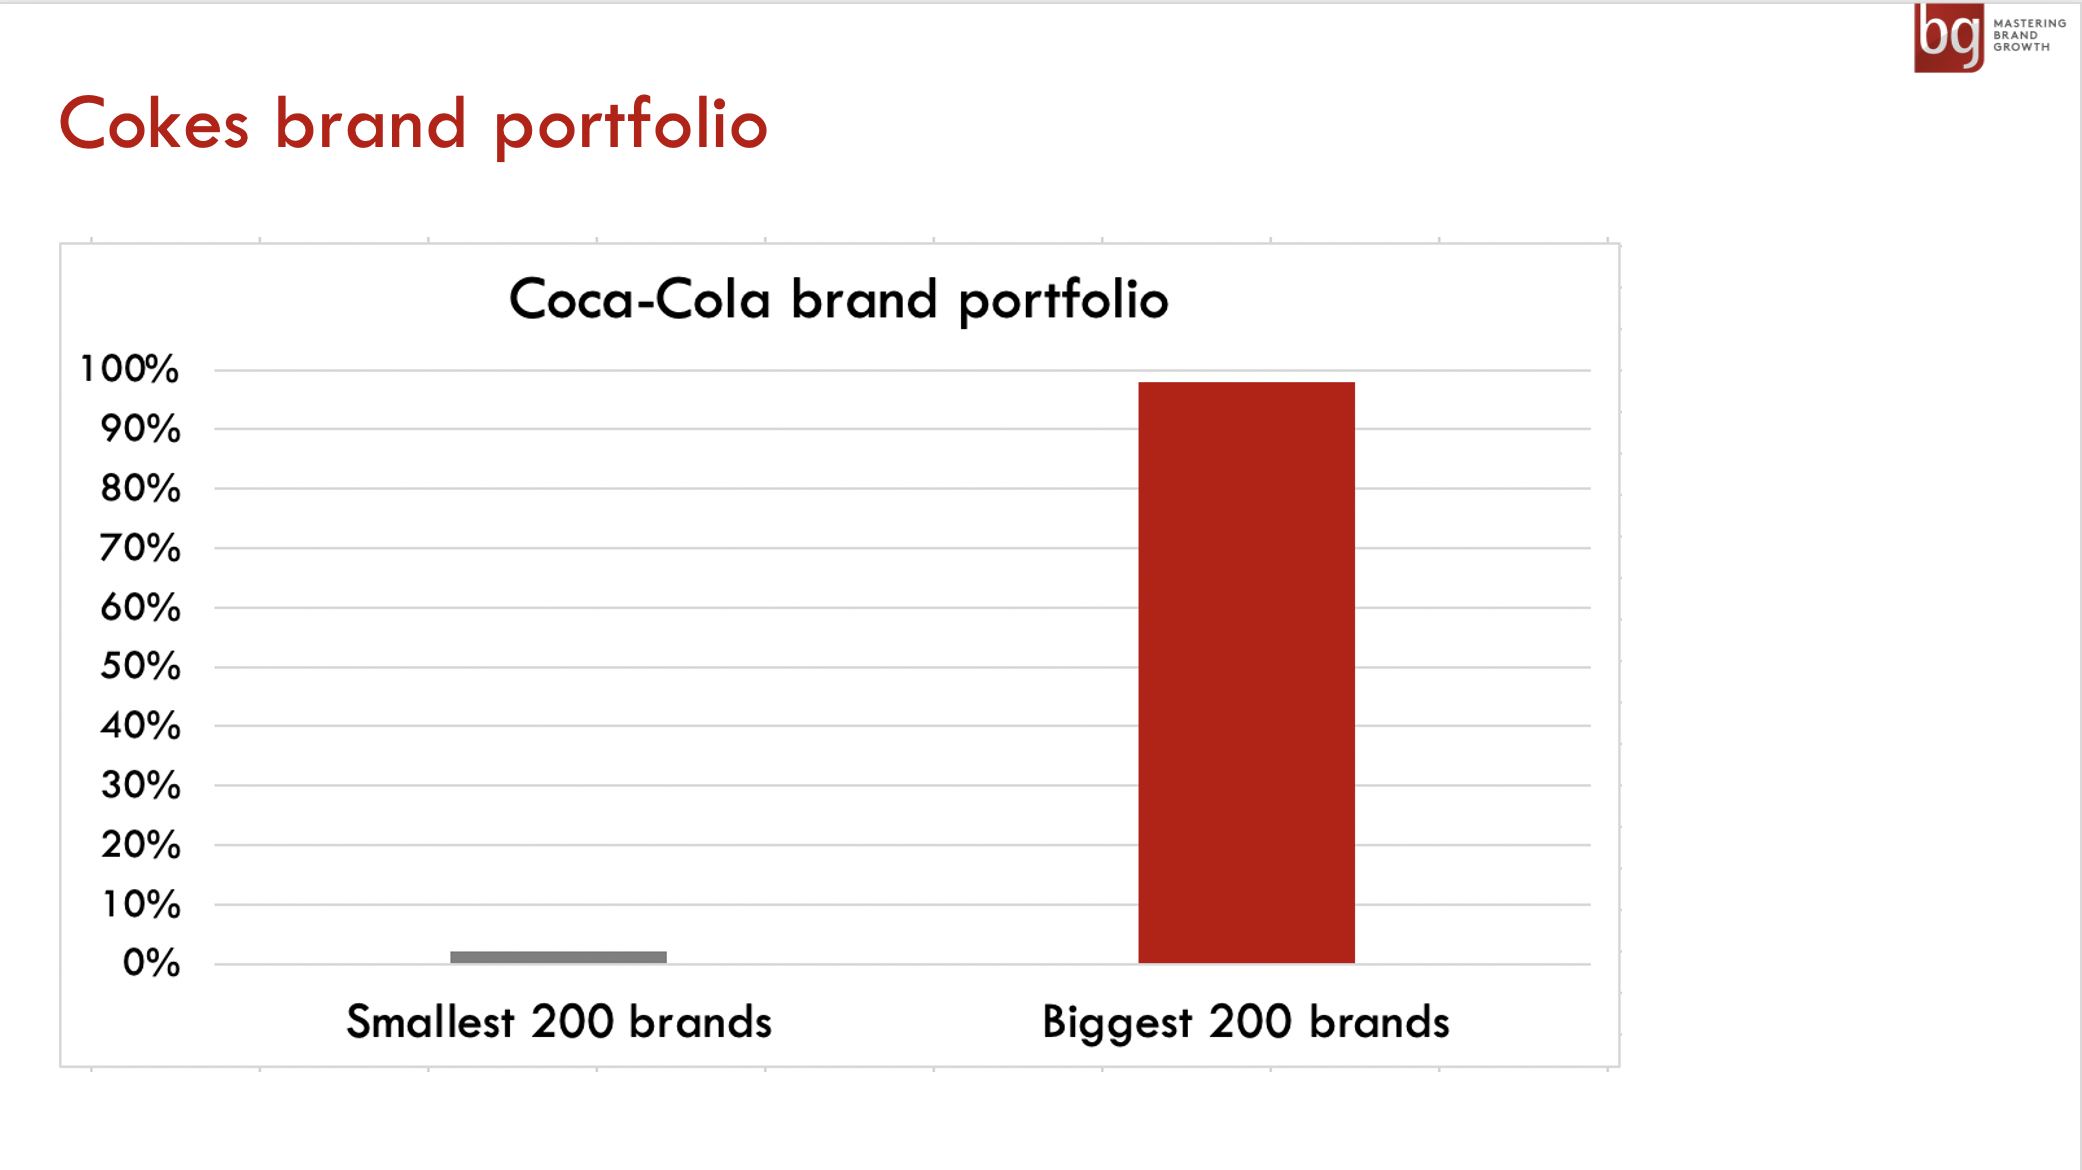 Half of Coke's small local country brands that account for only 2% of the company's sales